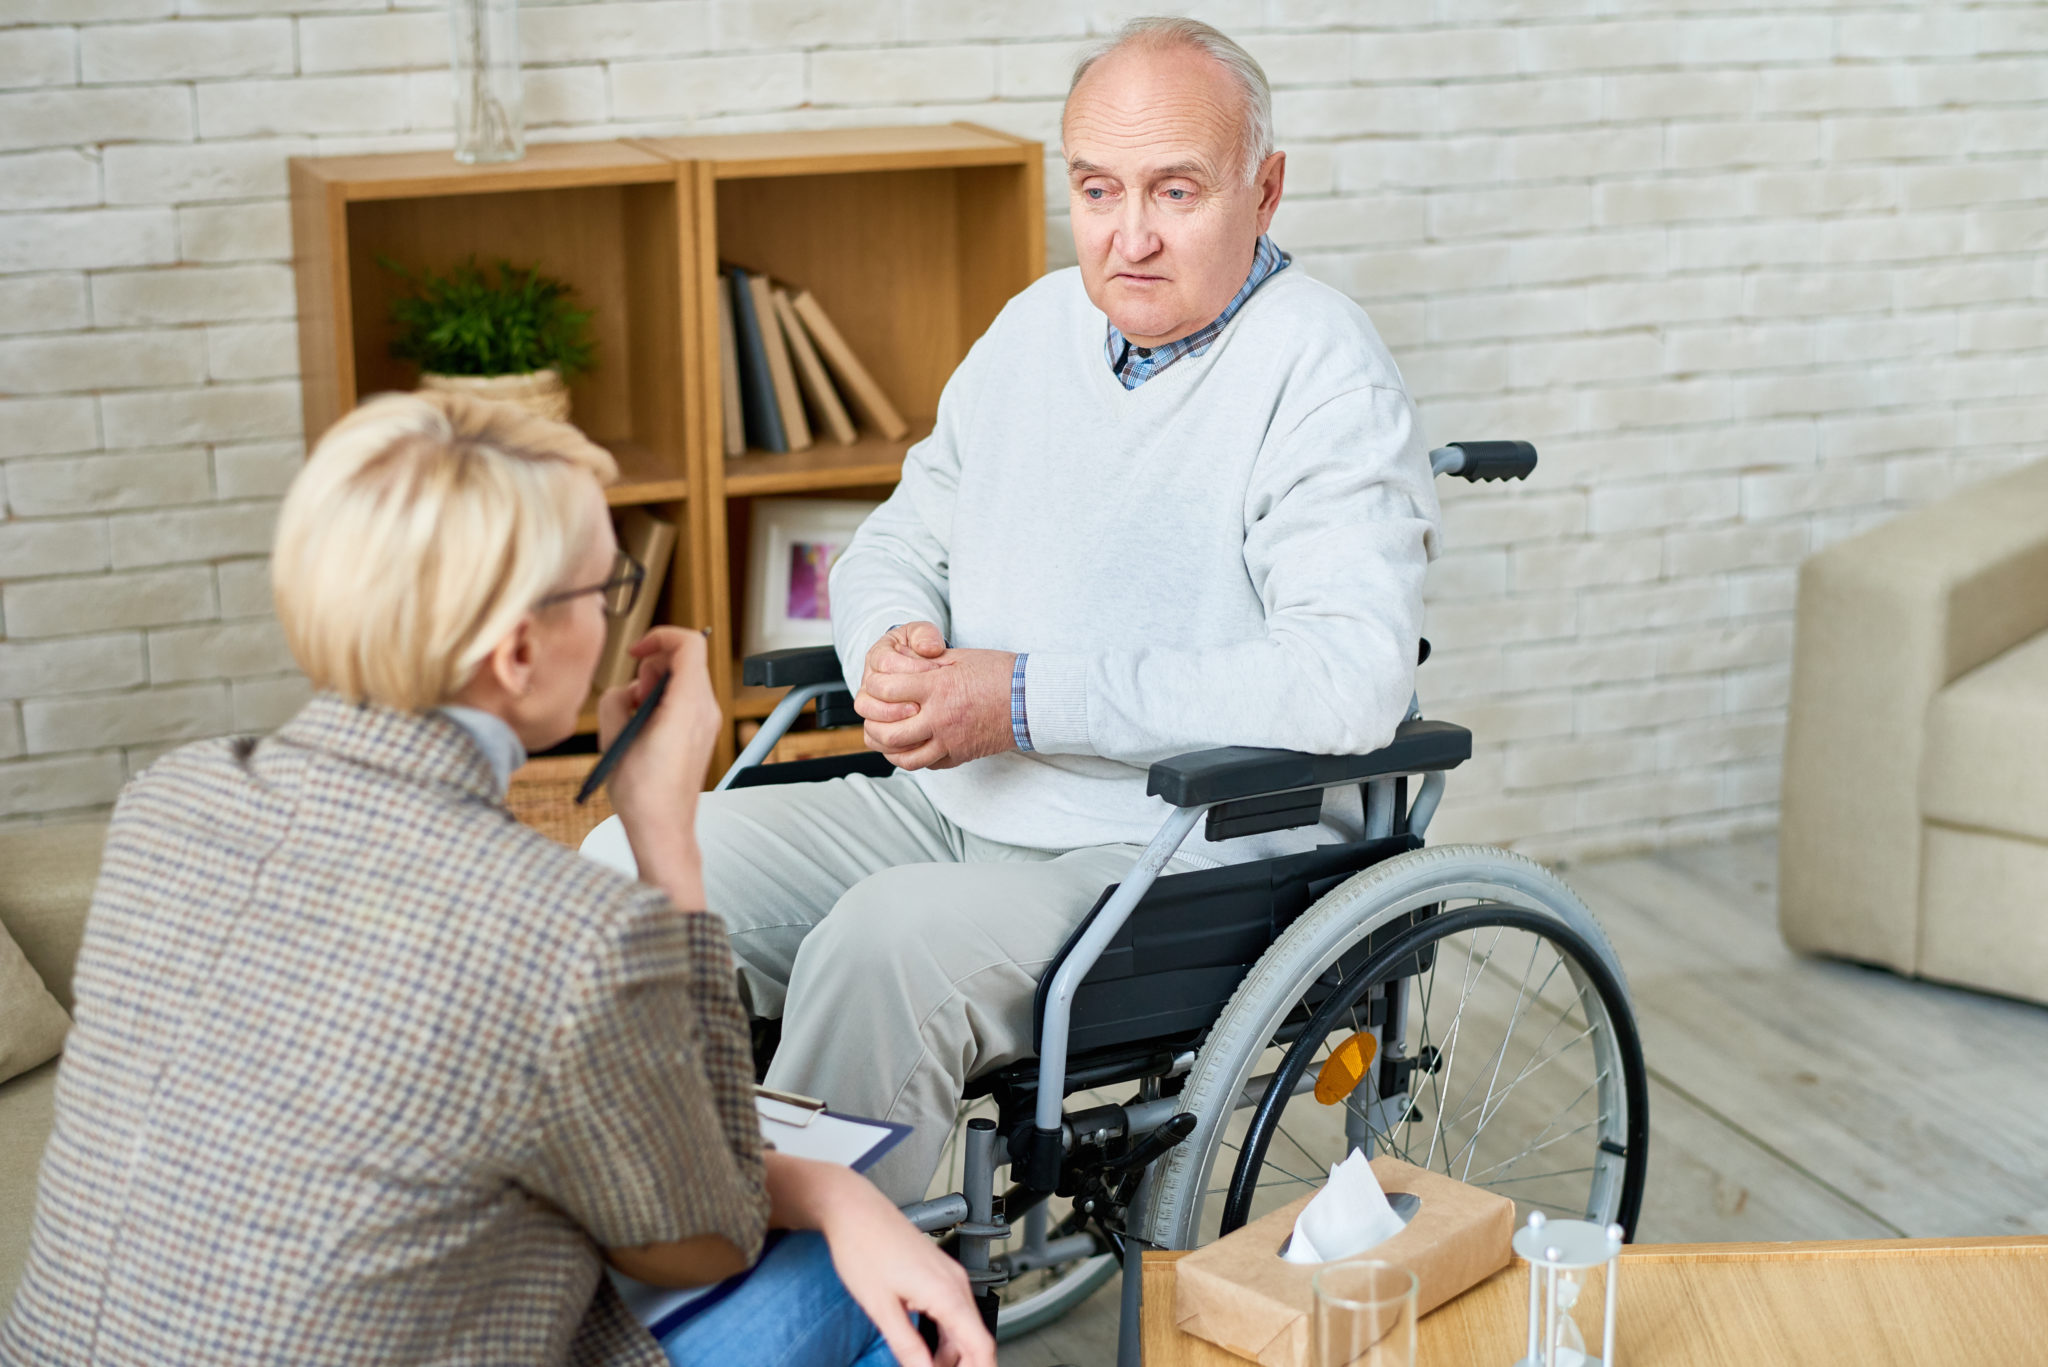 Rehabilitation Counselor Medical Career